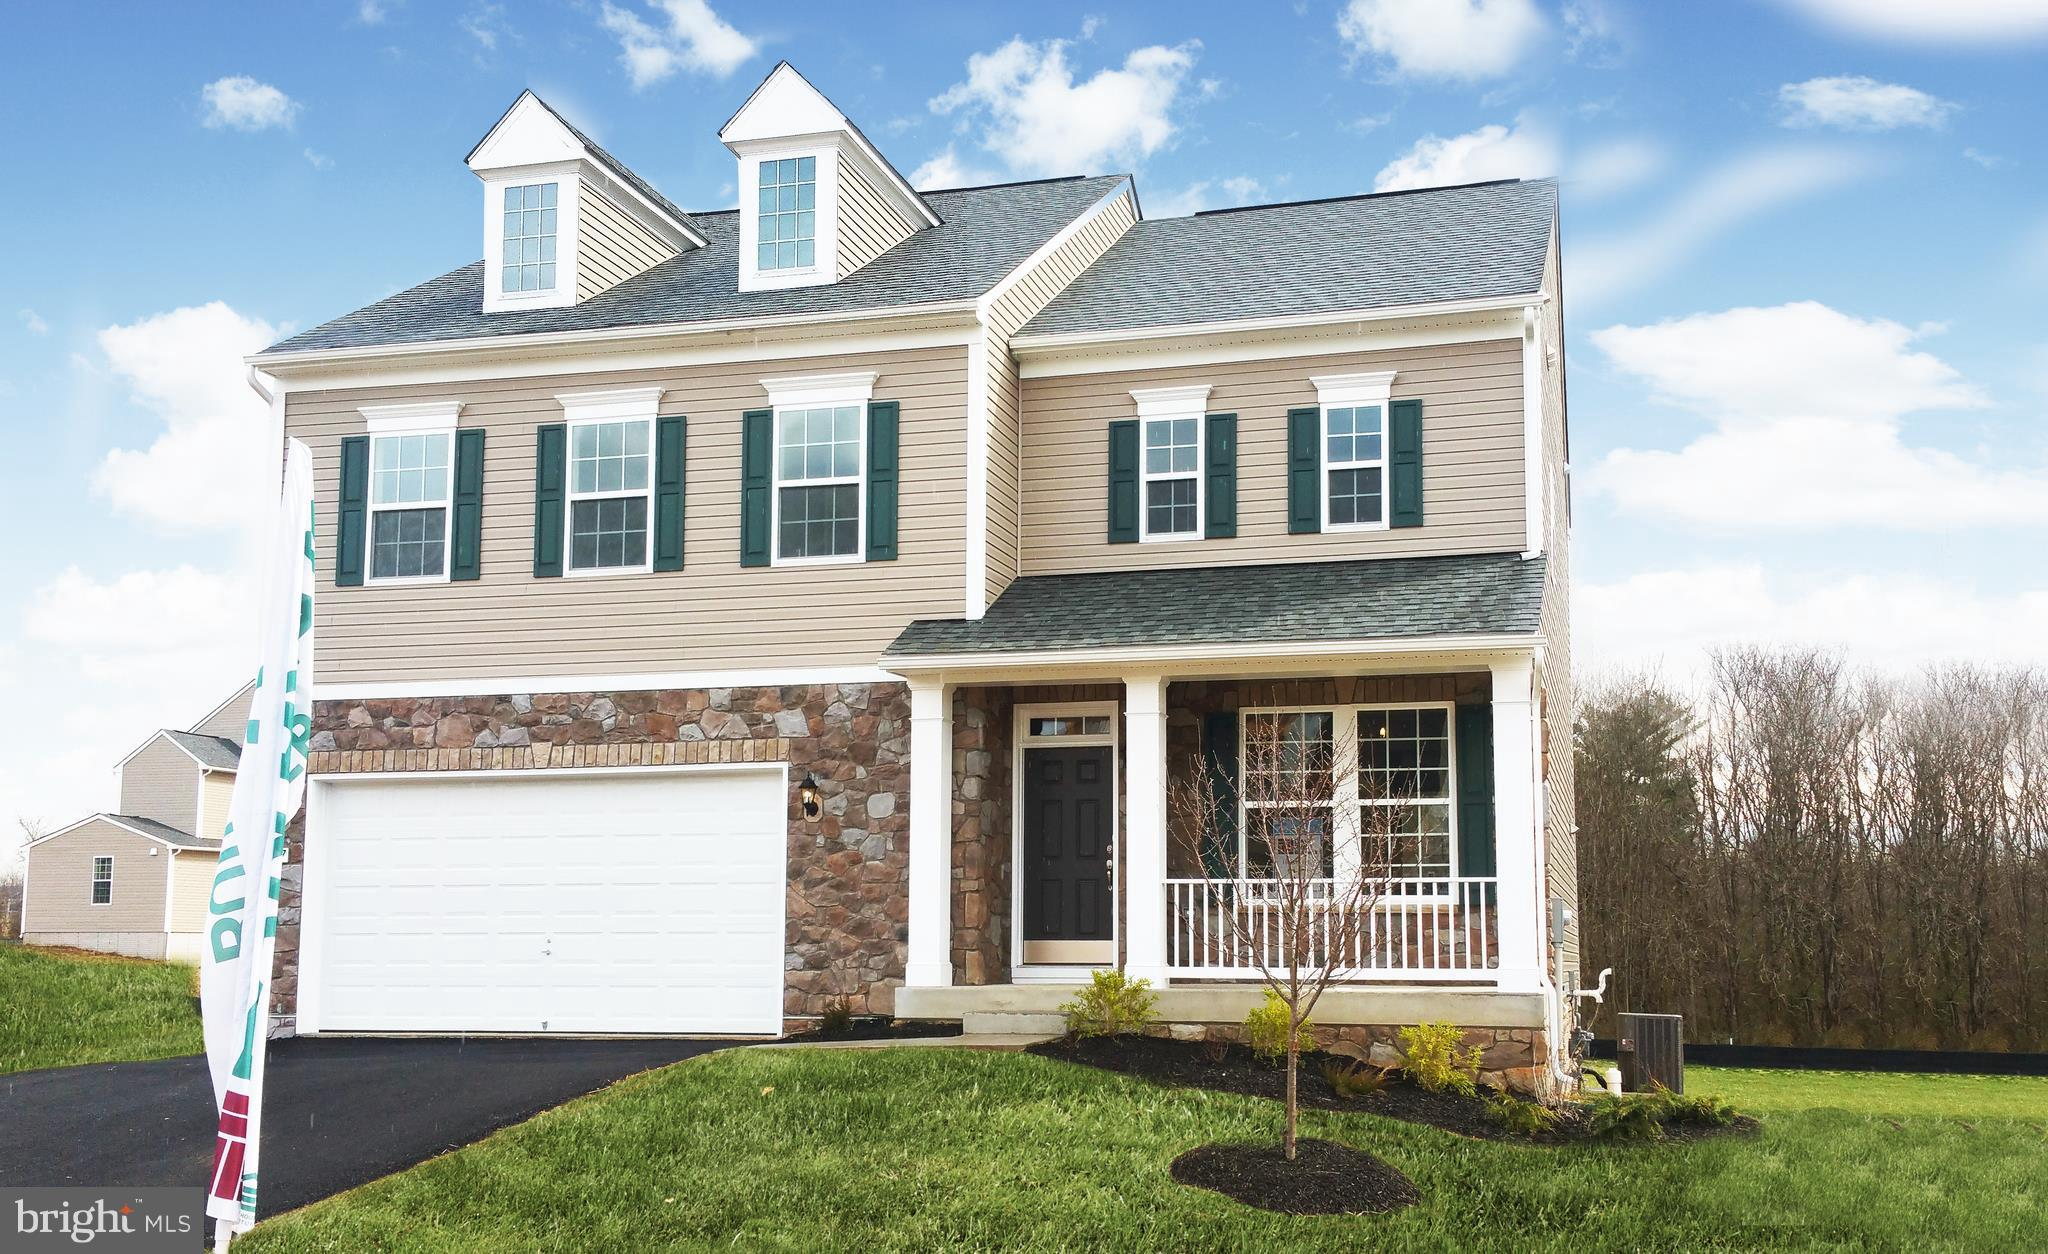 0 STRATHMORE WAY BRISTOL PLAN, MARTINSBURG, WV 25402